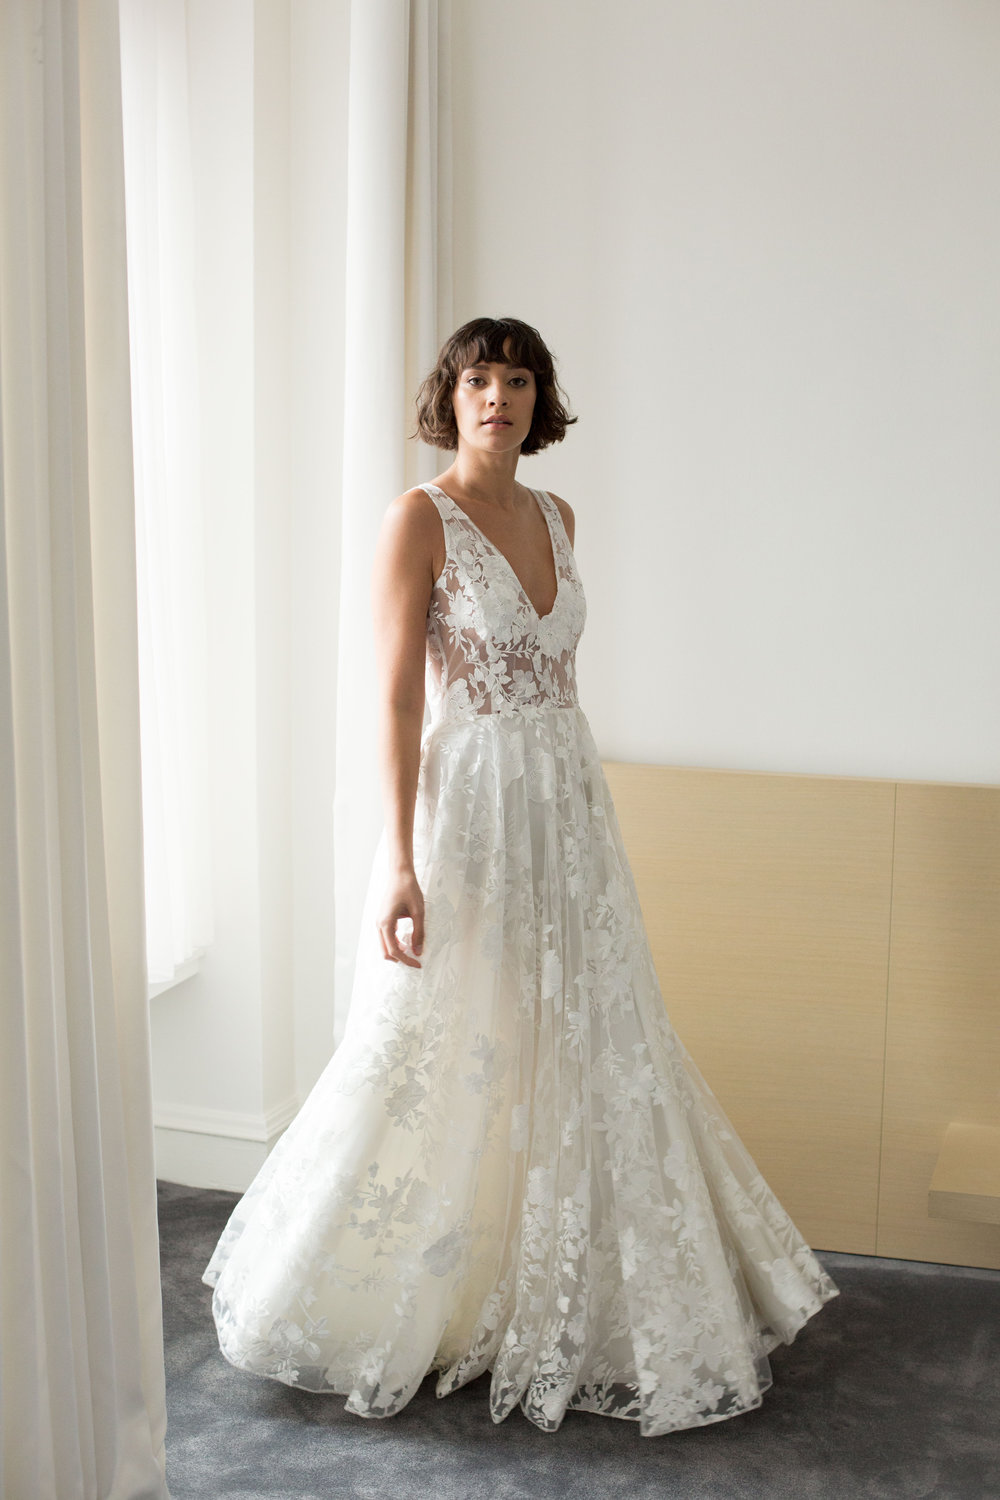 Amelia Gown, machine embroidered floral pattern on tulle with hand appliqué bodice